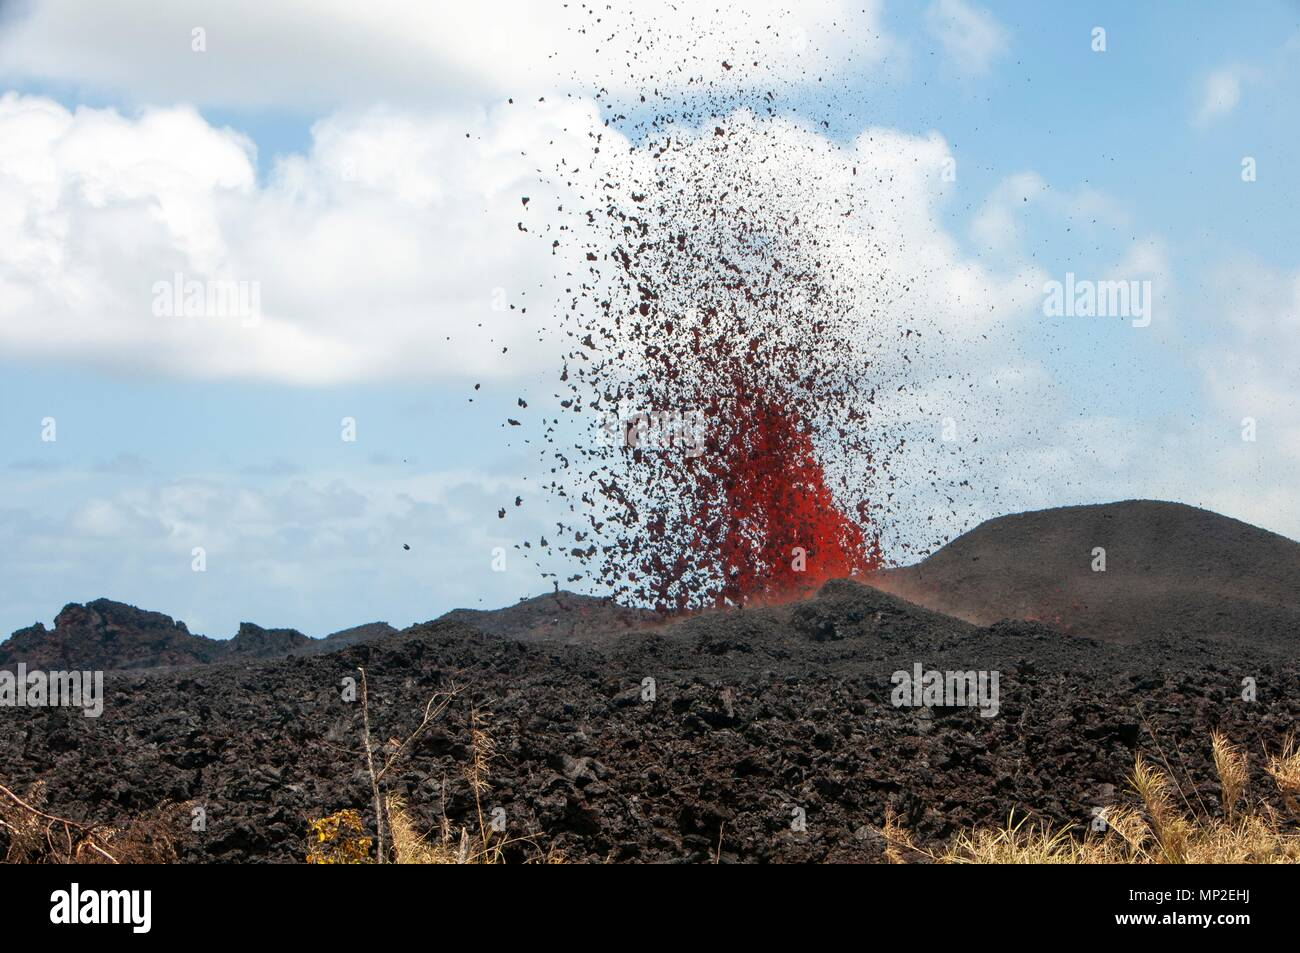 Lava spews out from fissure 17 caused by the eruption of the Kilauea volcano May 18, 2018 in Pahoa, Hawaii. Stock Photo